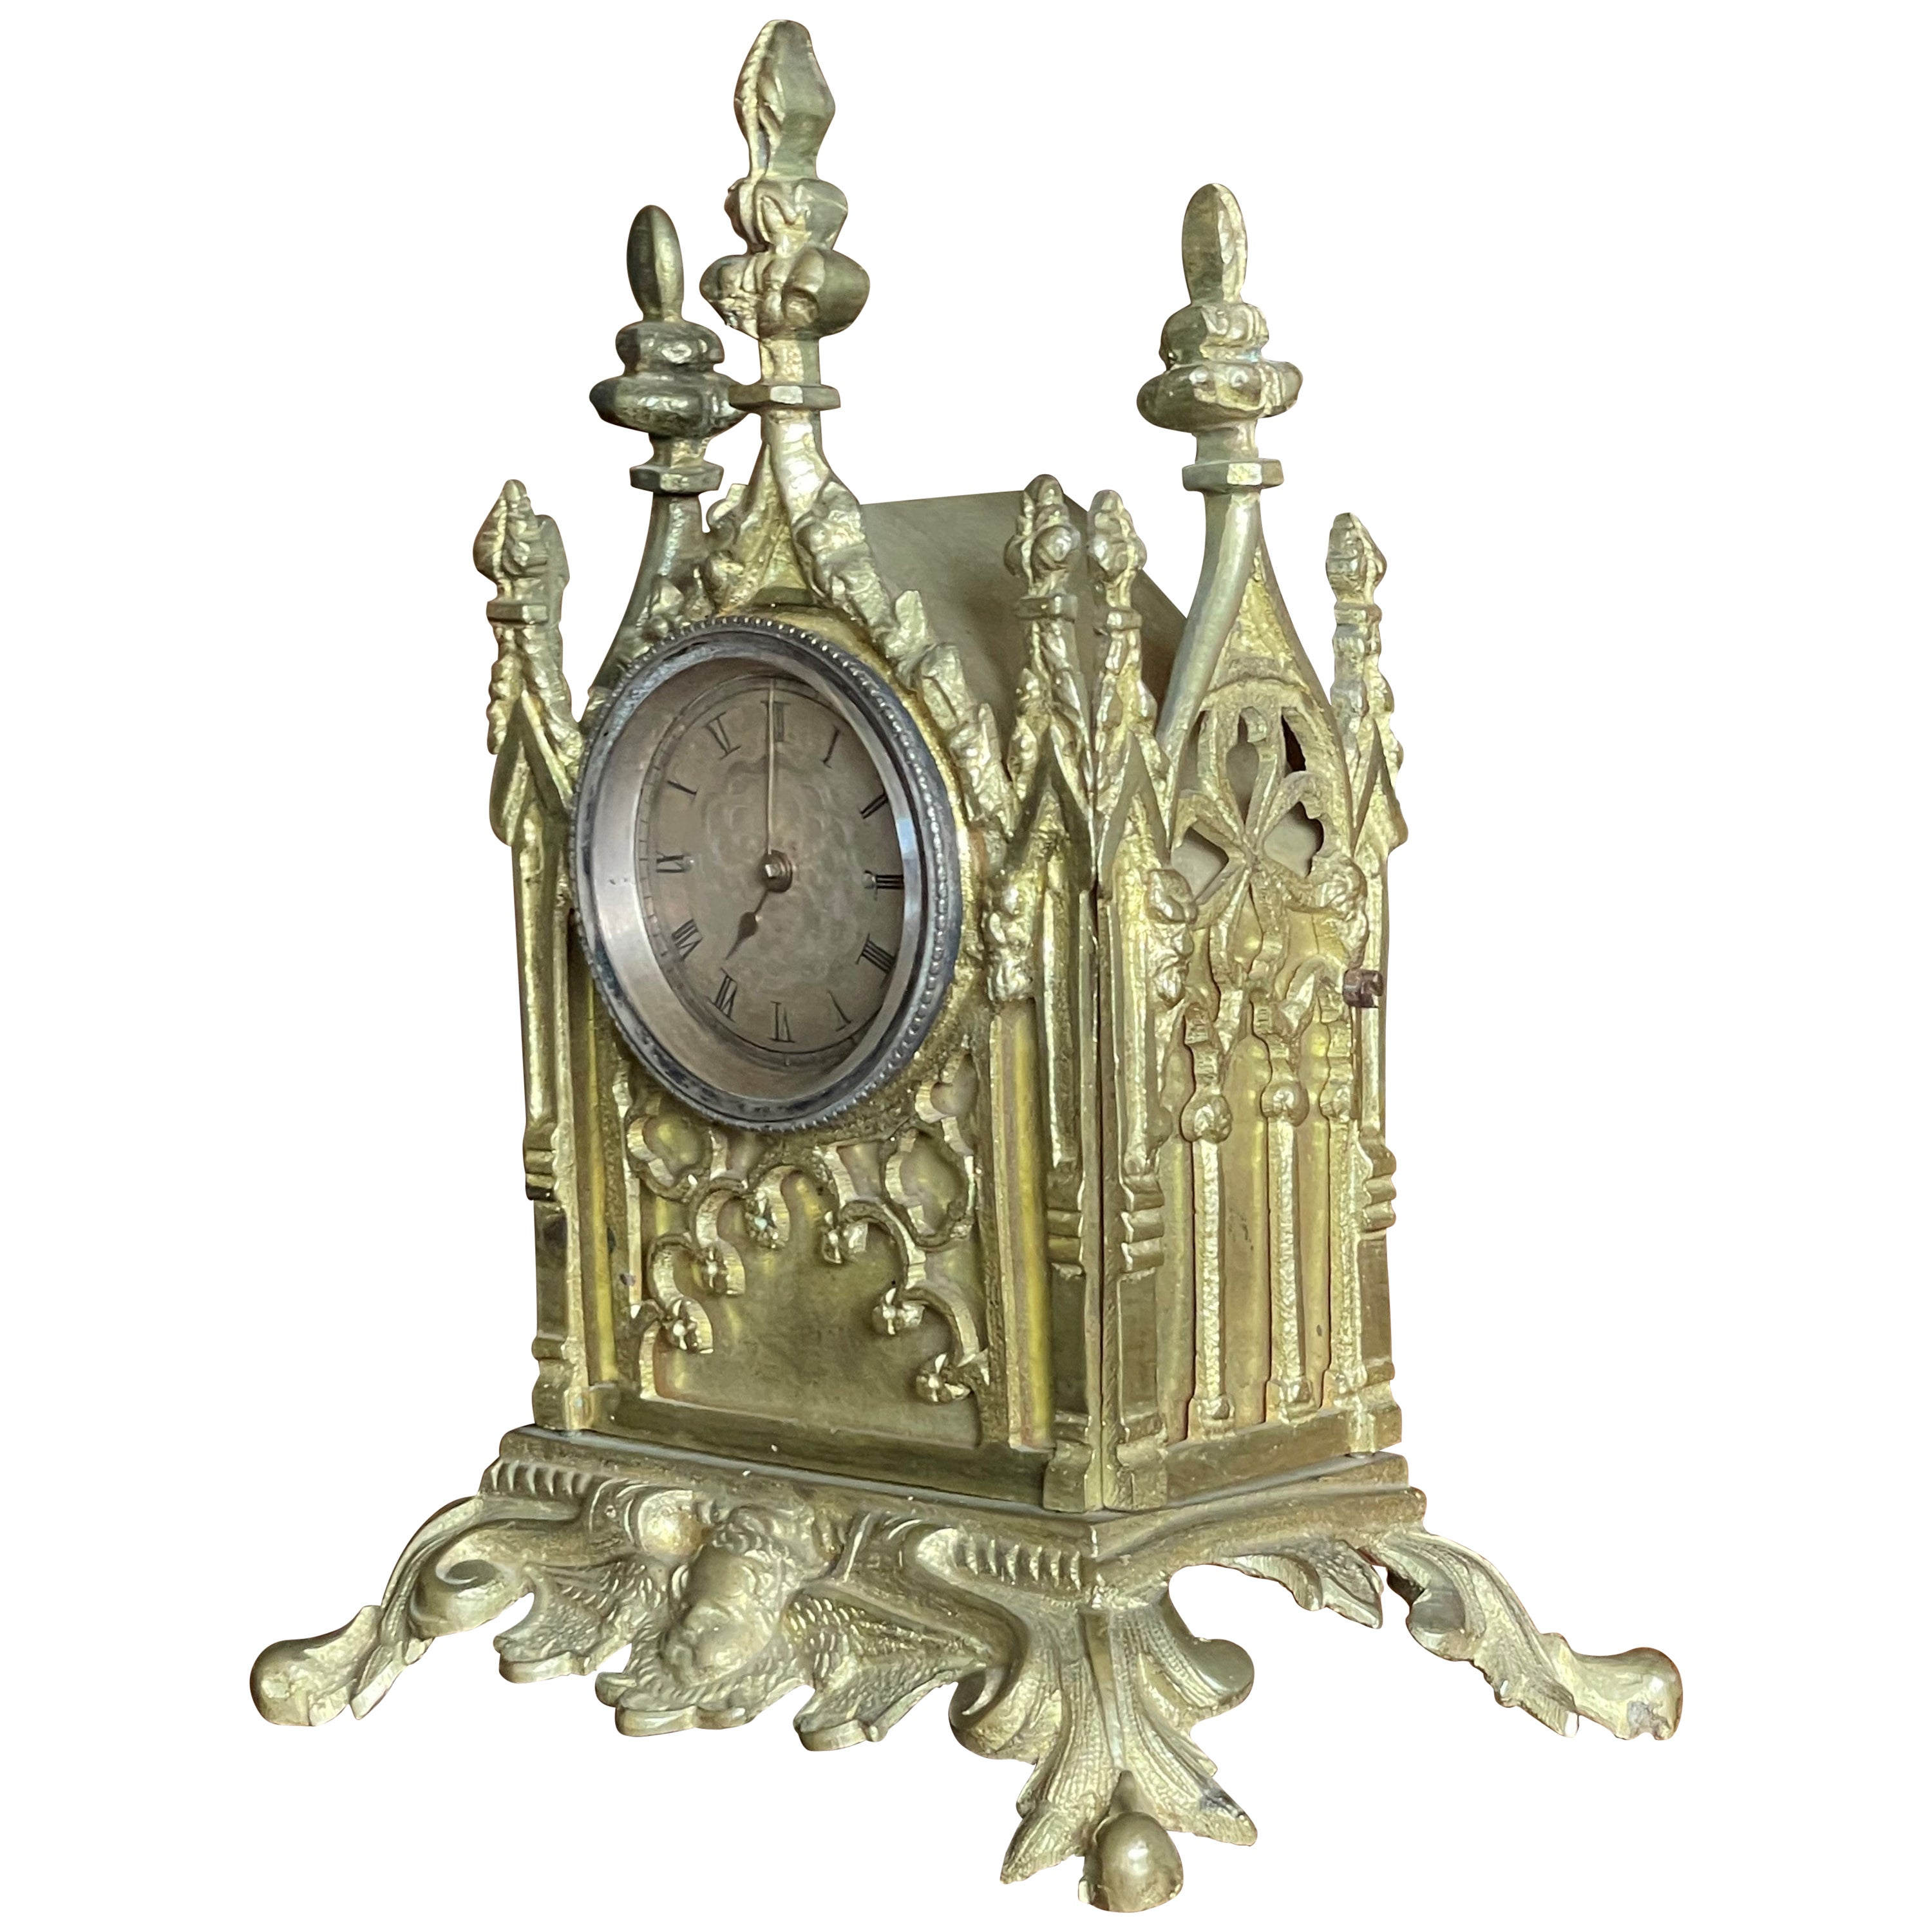 Gothic Table Clock w. Stunning Antique Pocket Watch Made of Gilt Bronze or Gold